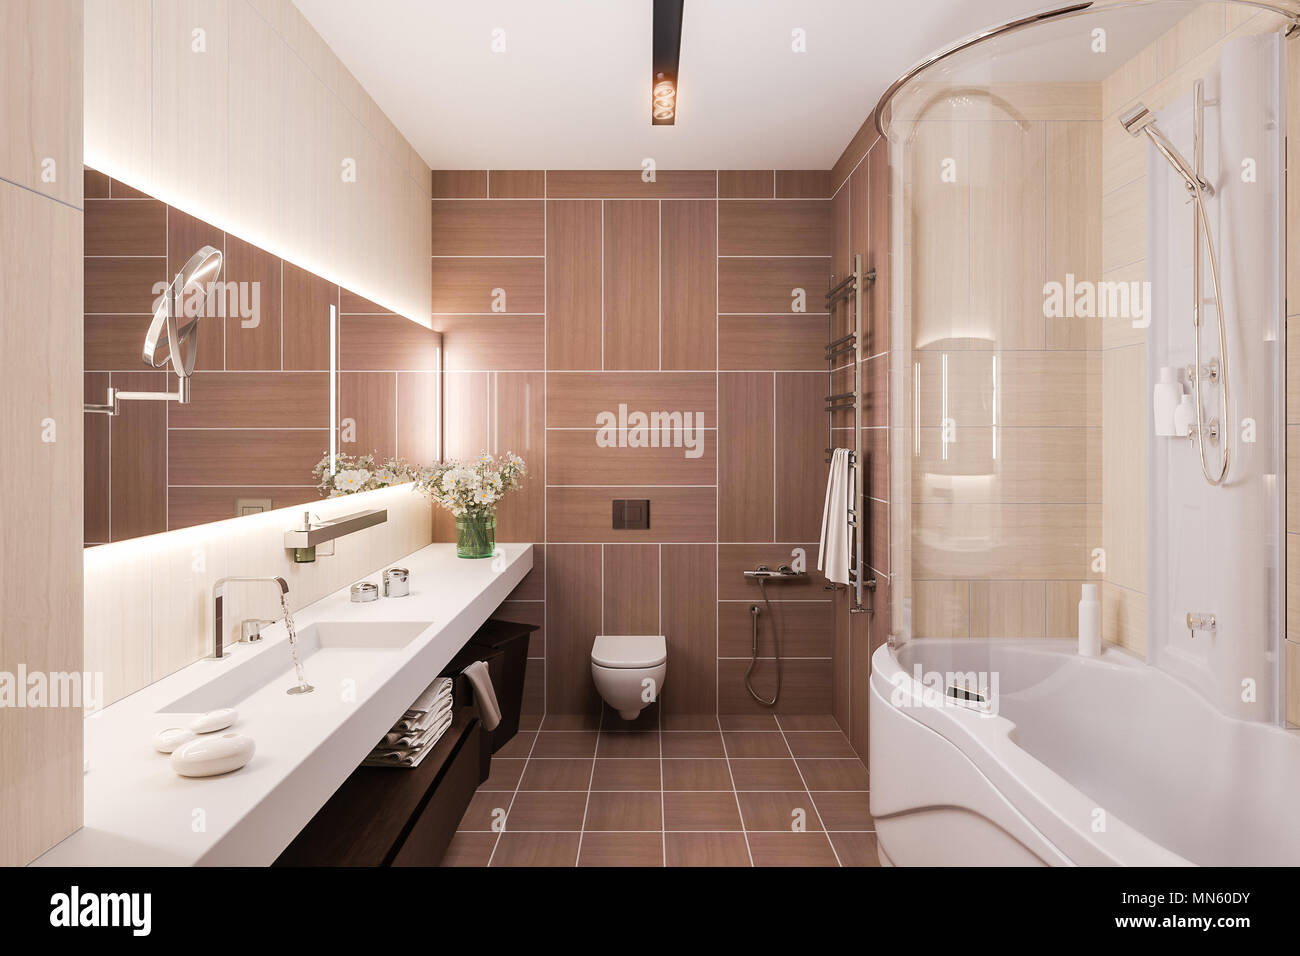 Beau Interior Design Of A Modern Bathroom With A Large Mirror. 3d Illustration  In Warm Colors. 3d Render In High Resolution For Printing.